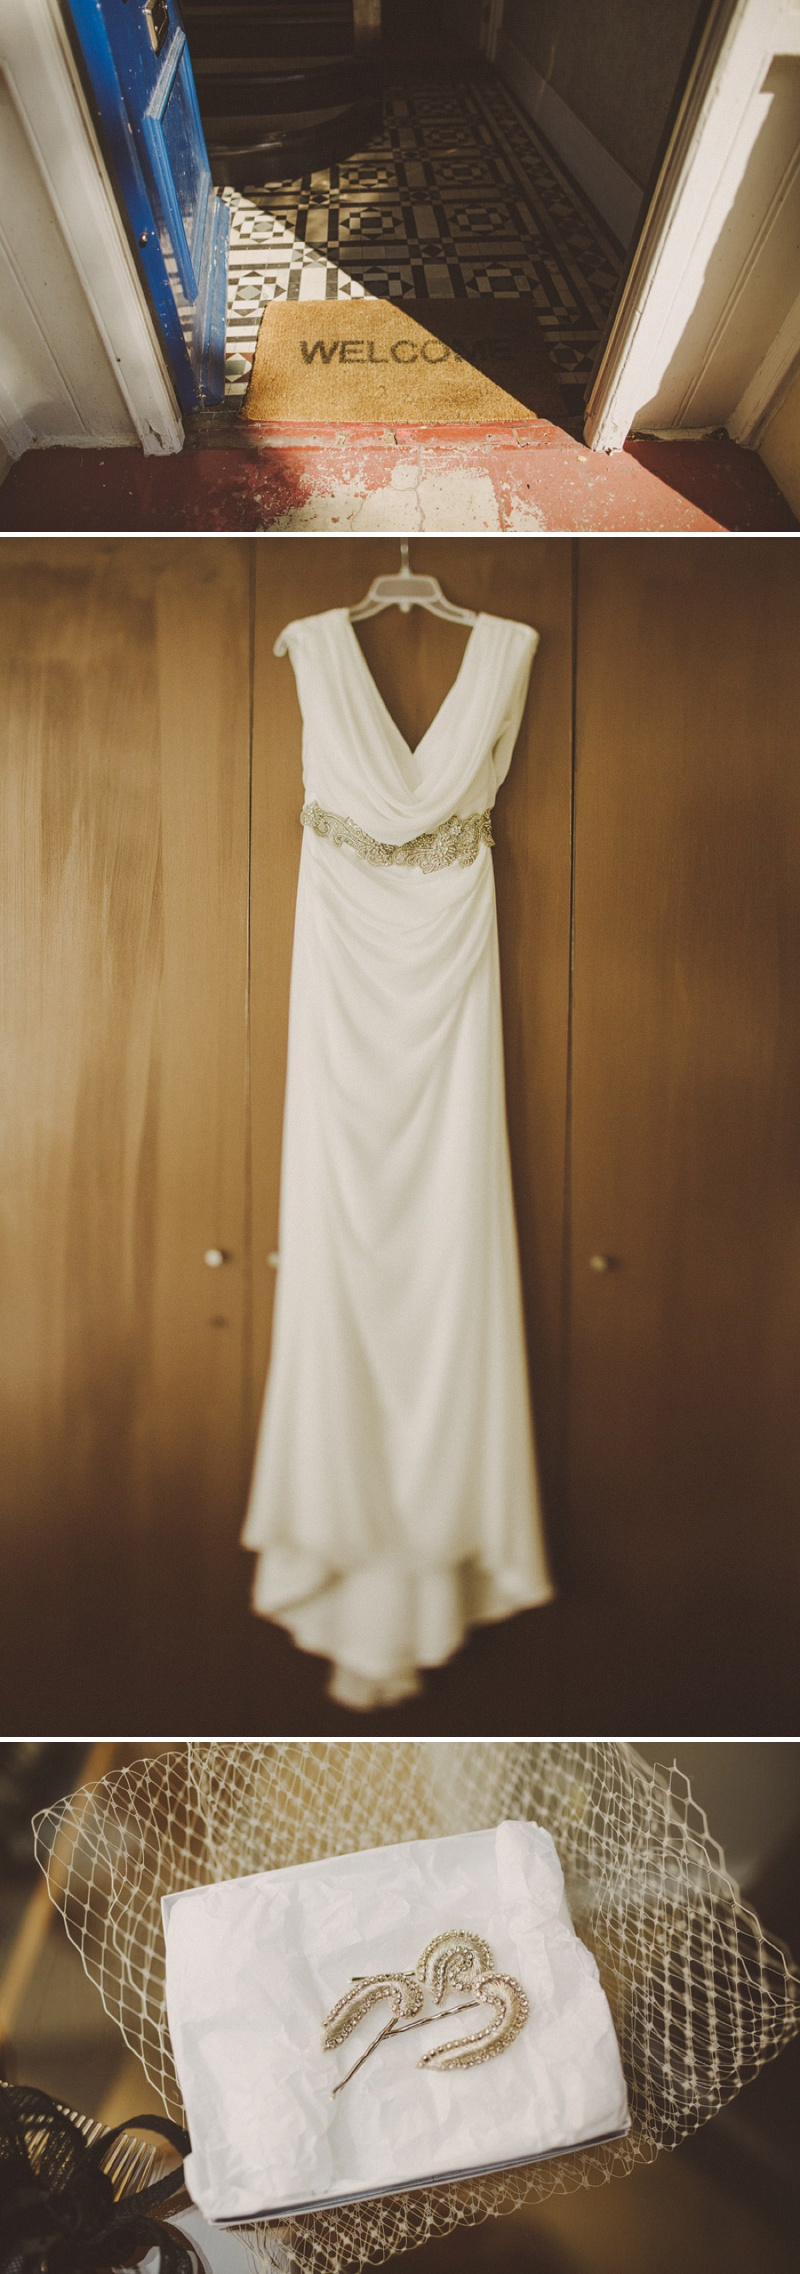 A hip city wedding held at an power station art gallery in East London with a Cymbeline 1930s inspired dress and a white rose bouquet with photography by Ed Peers._0002